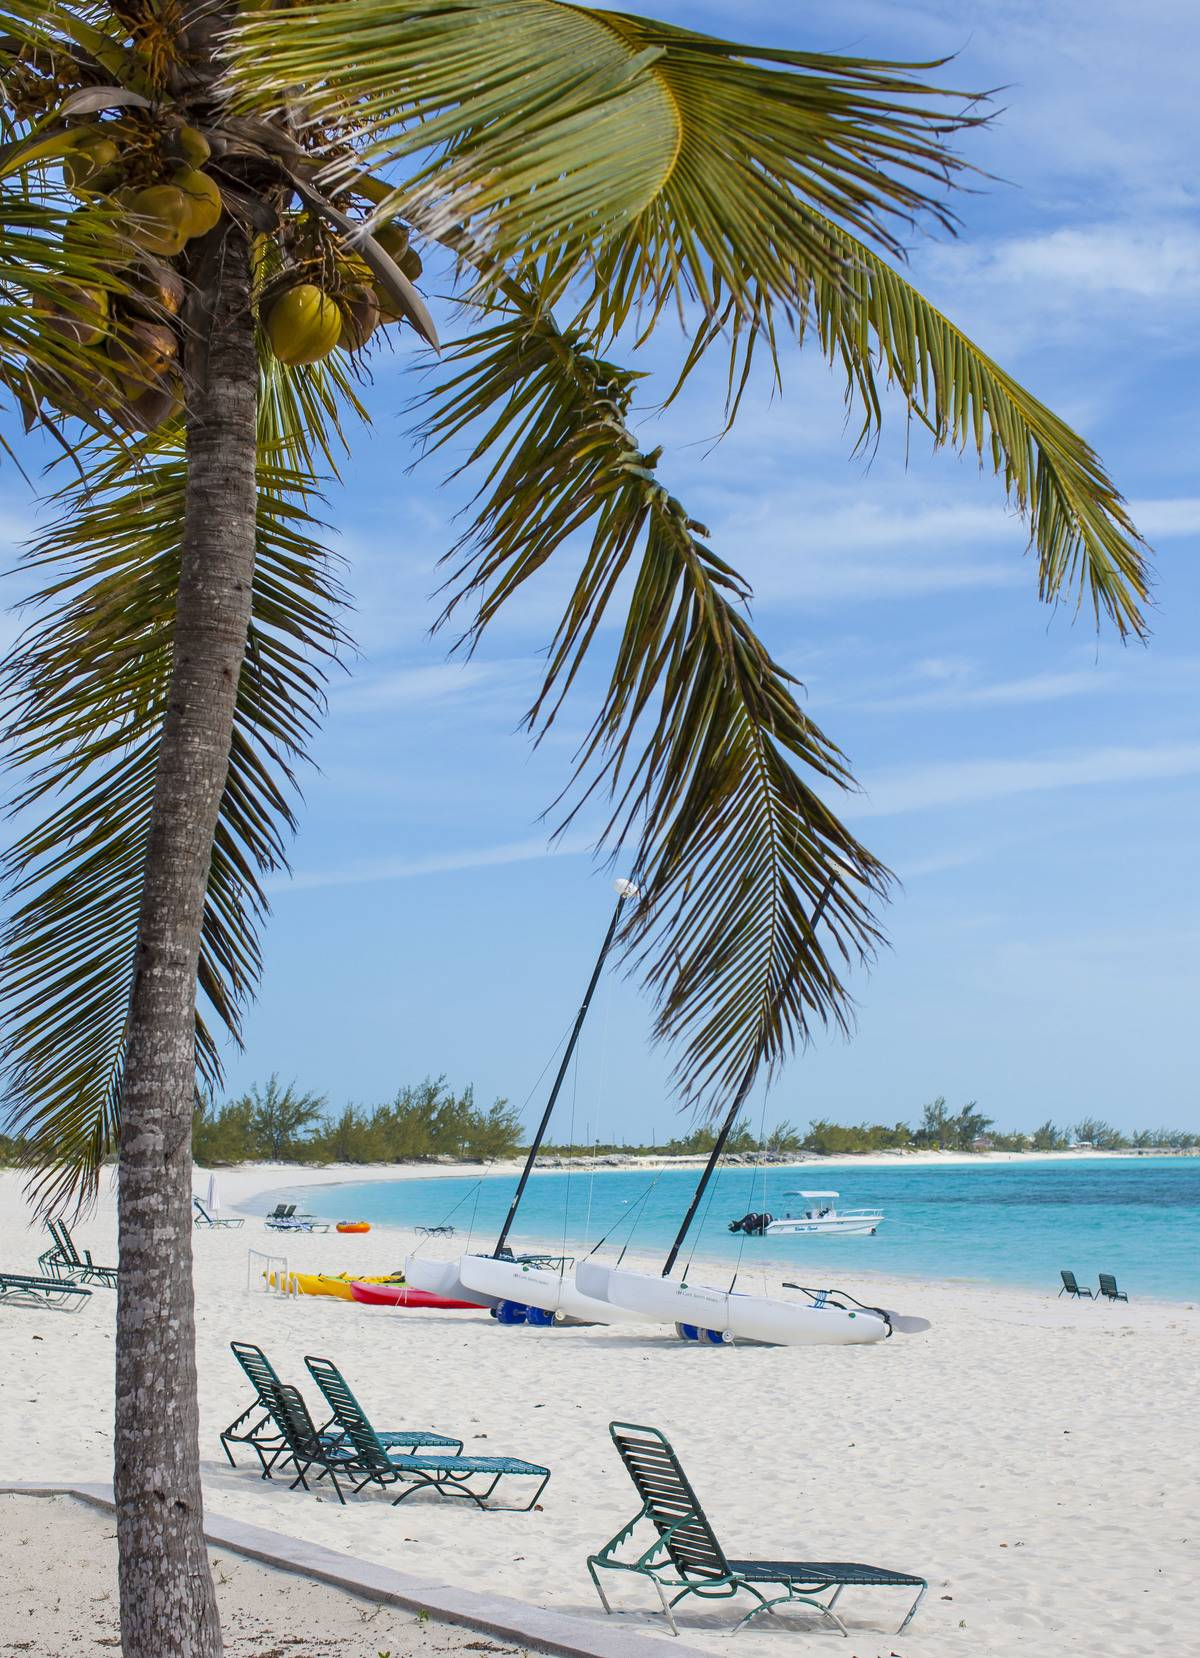 Coconut palm tree, empty sunbeds, sailing boat  at the white sandy beach of luxury Resort and Hotel Cape Santa Maria